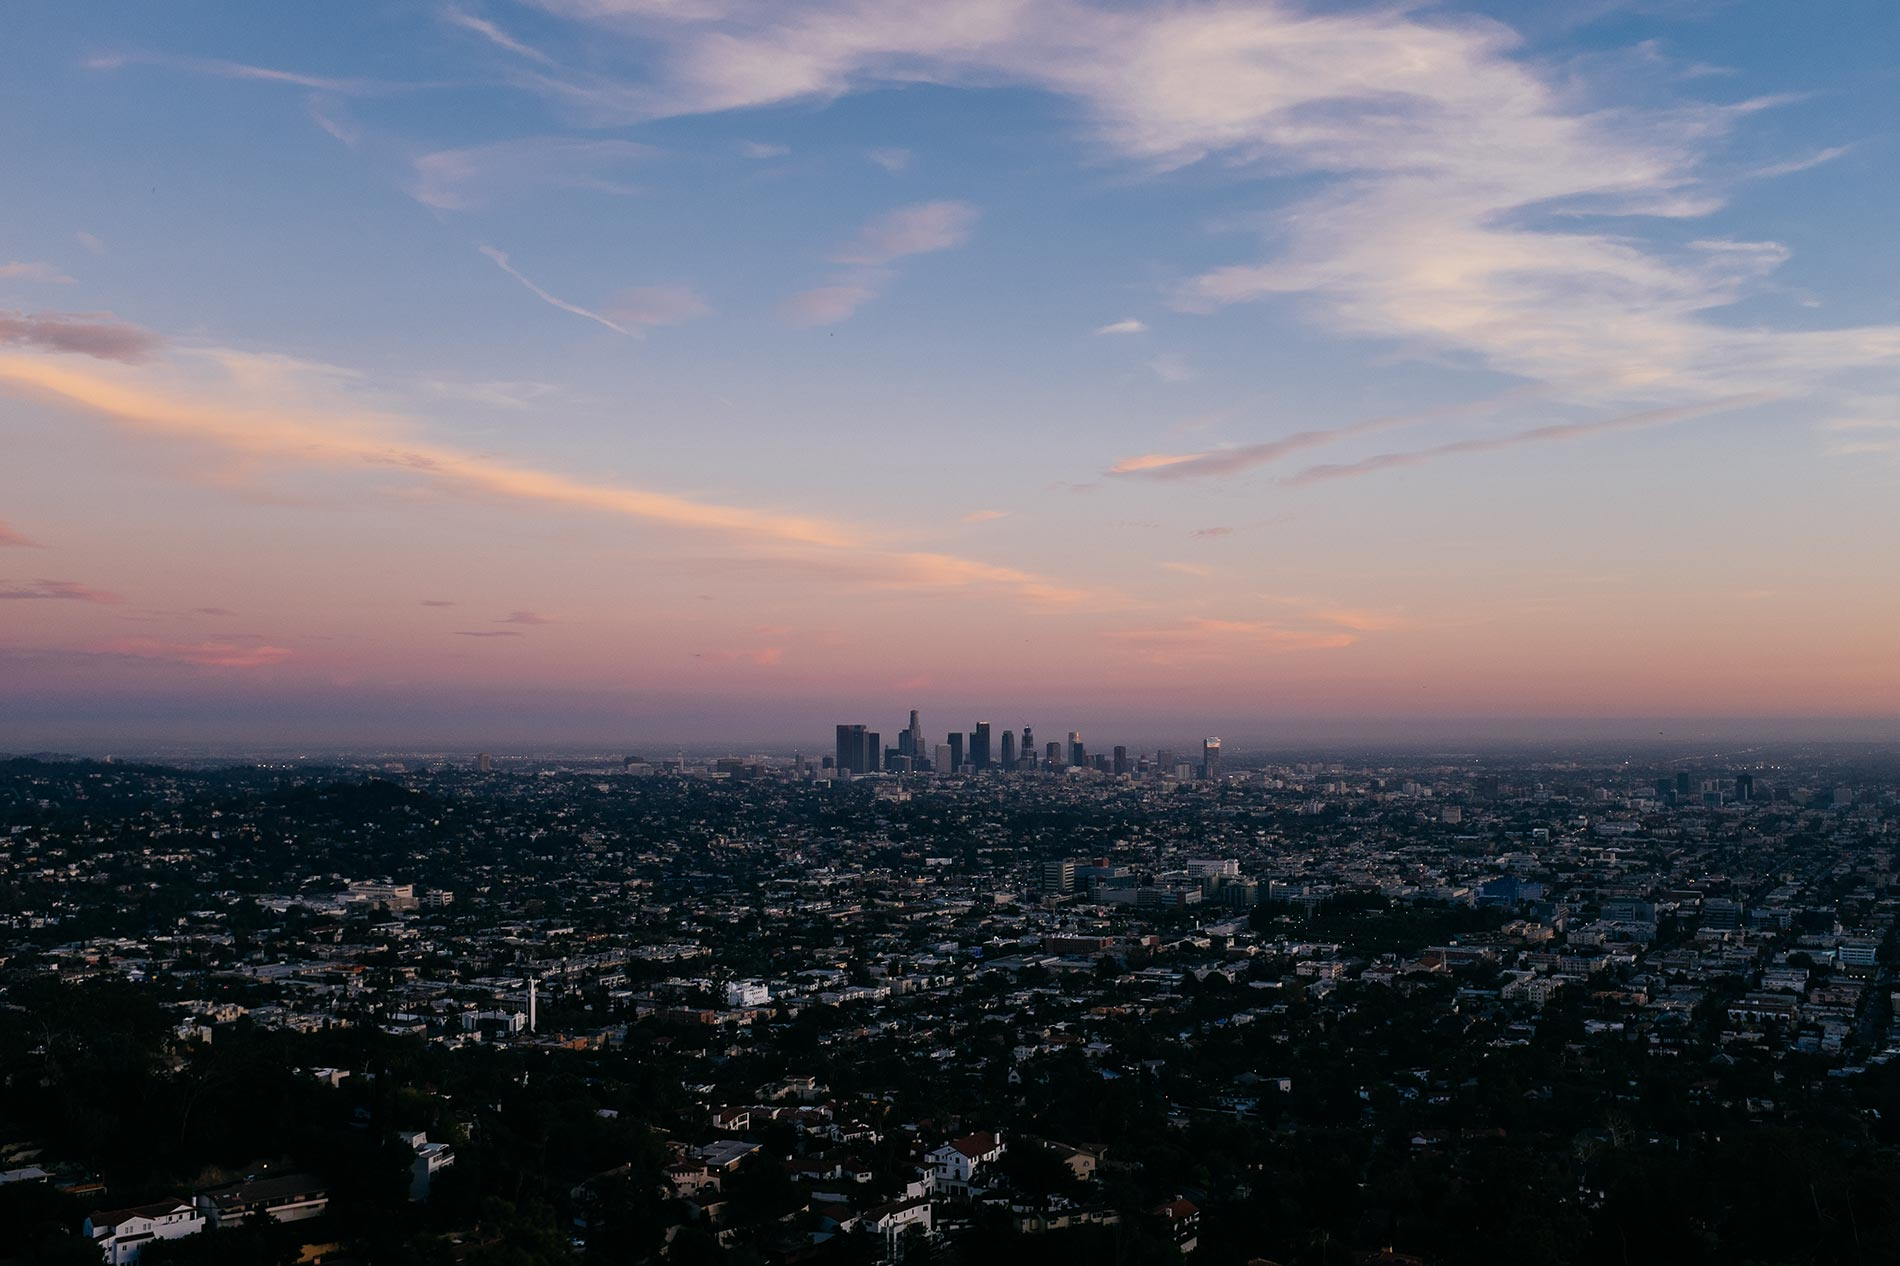 Los Angeles, California by Jason Jean